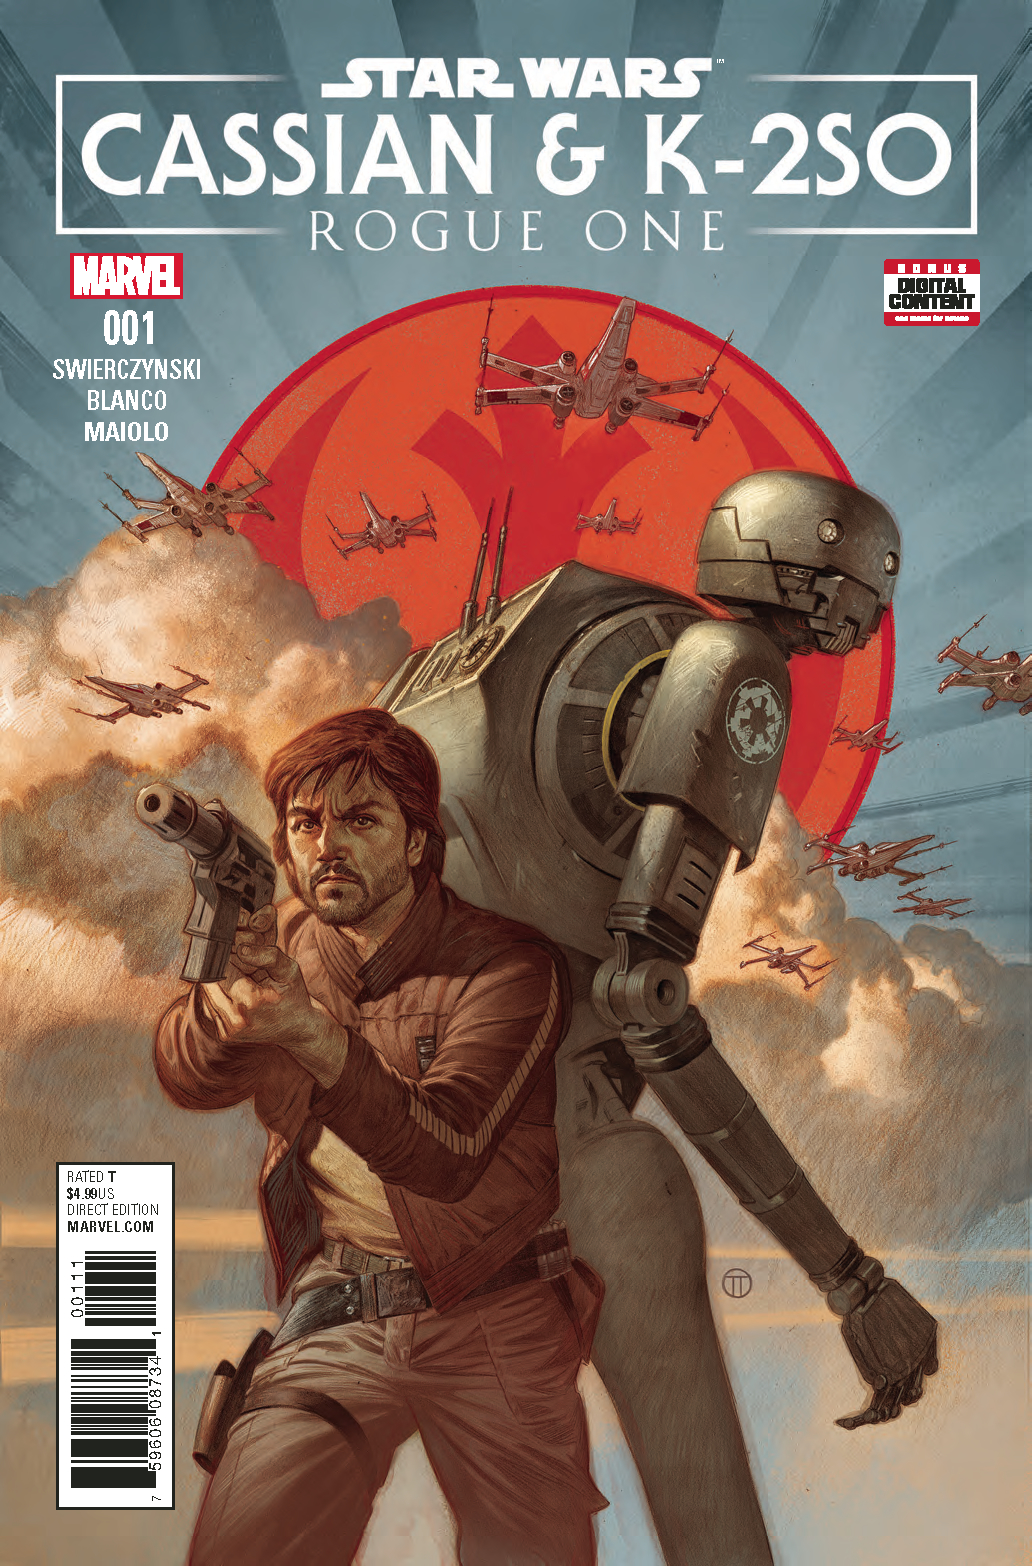 STAR WARS ROGUE ONE CASSIAN & K2SO SPECIAL #1